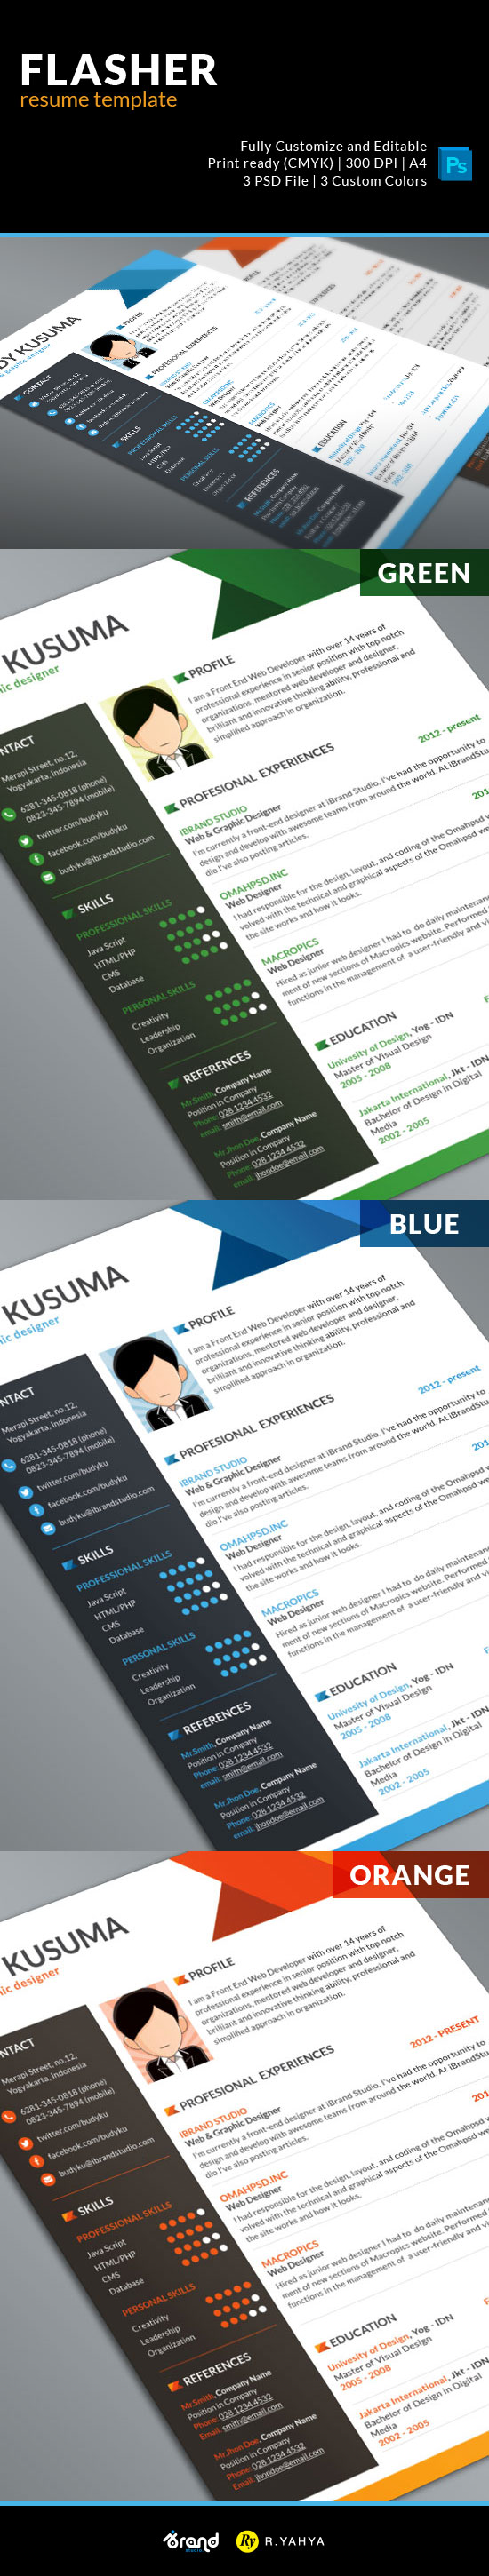 4: Free Resume-Cv Template For Graphic Designers 2015: